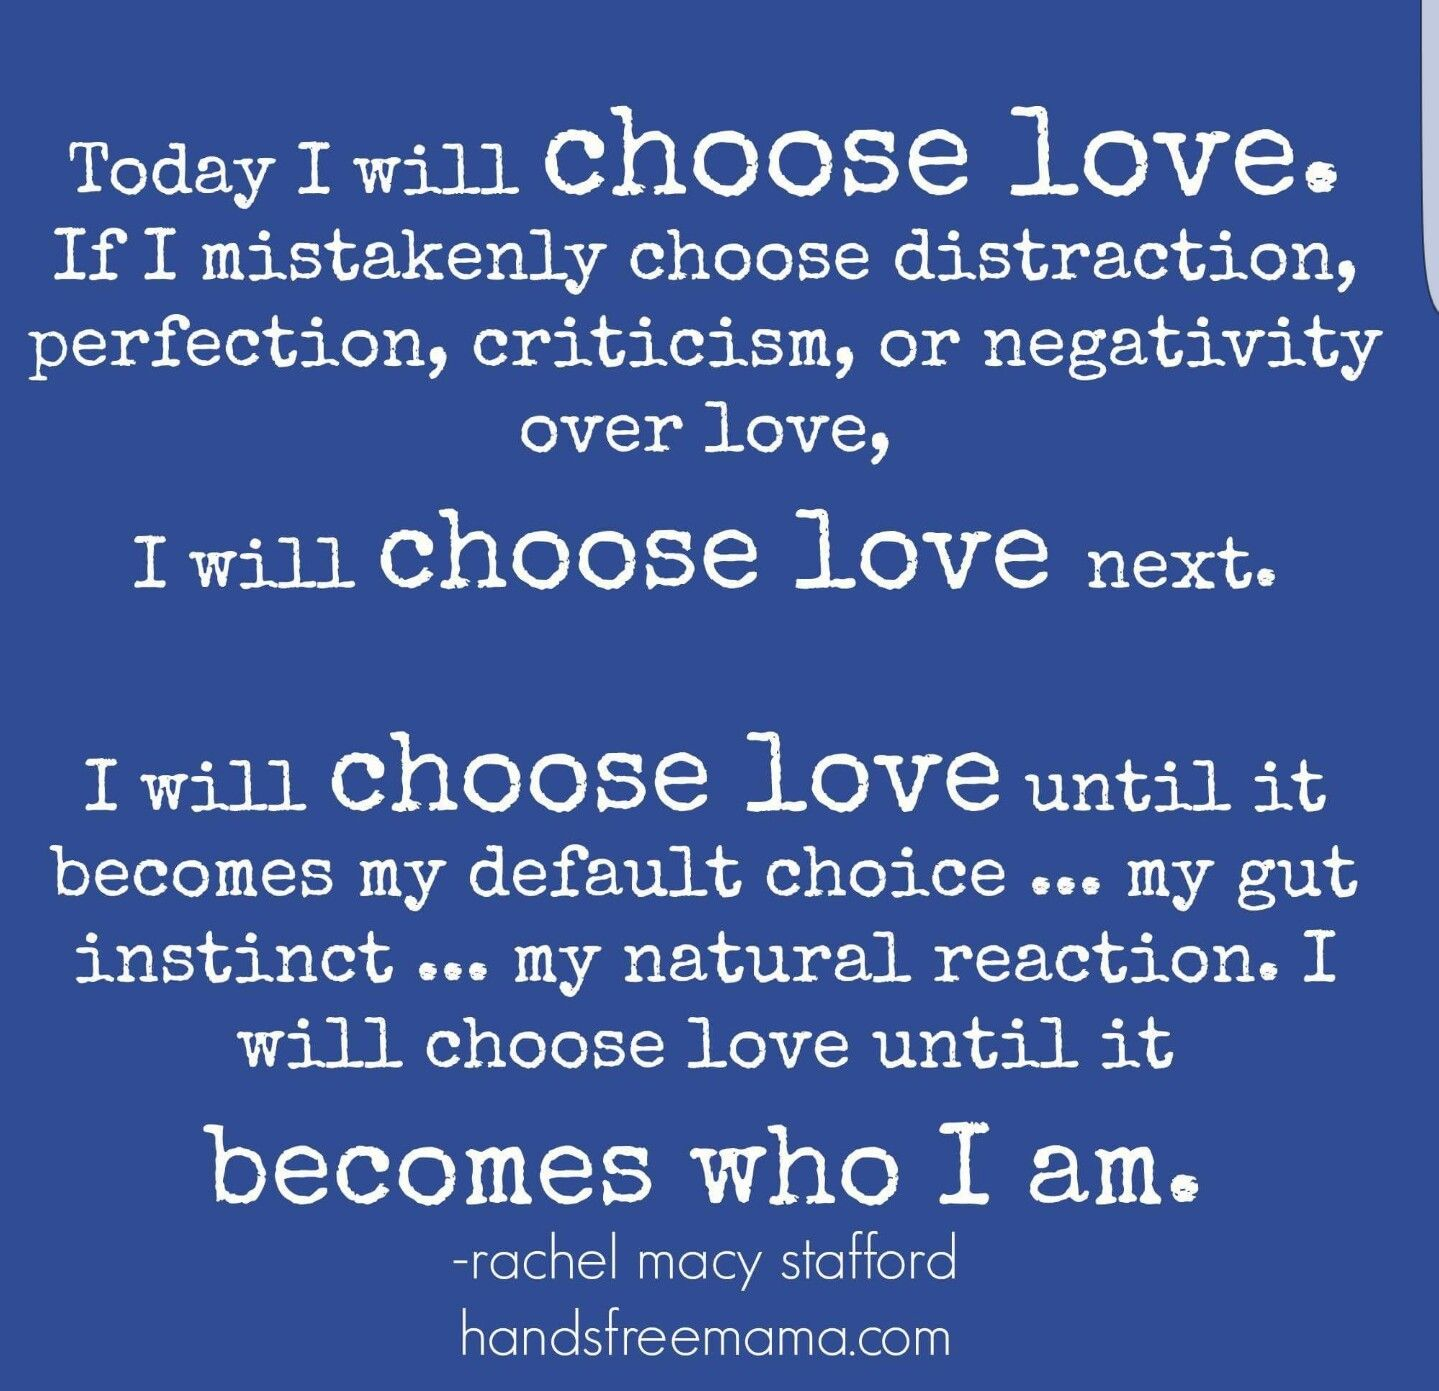 Today I will choose love I will choose love until it becomes